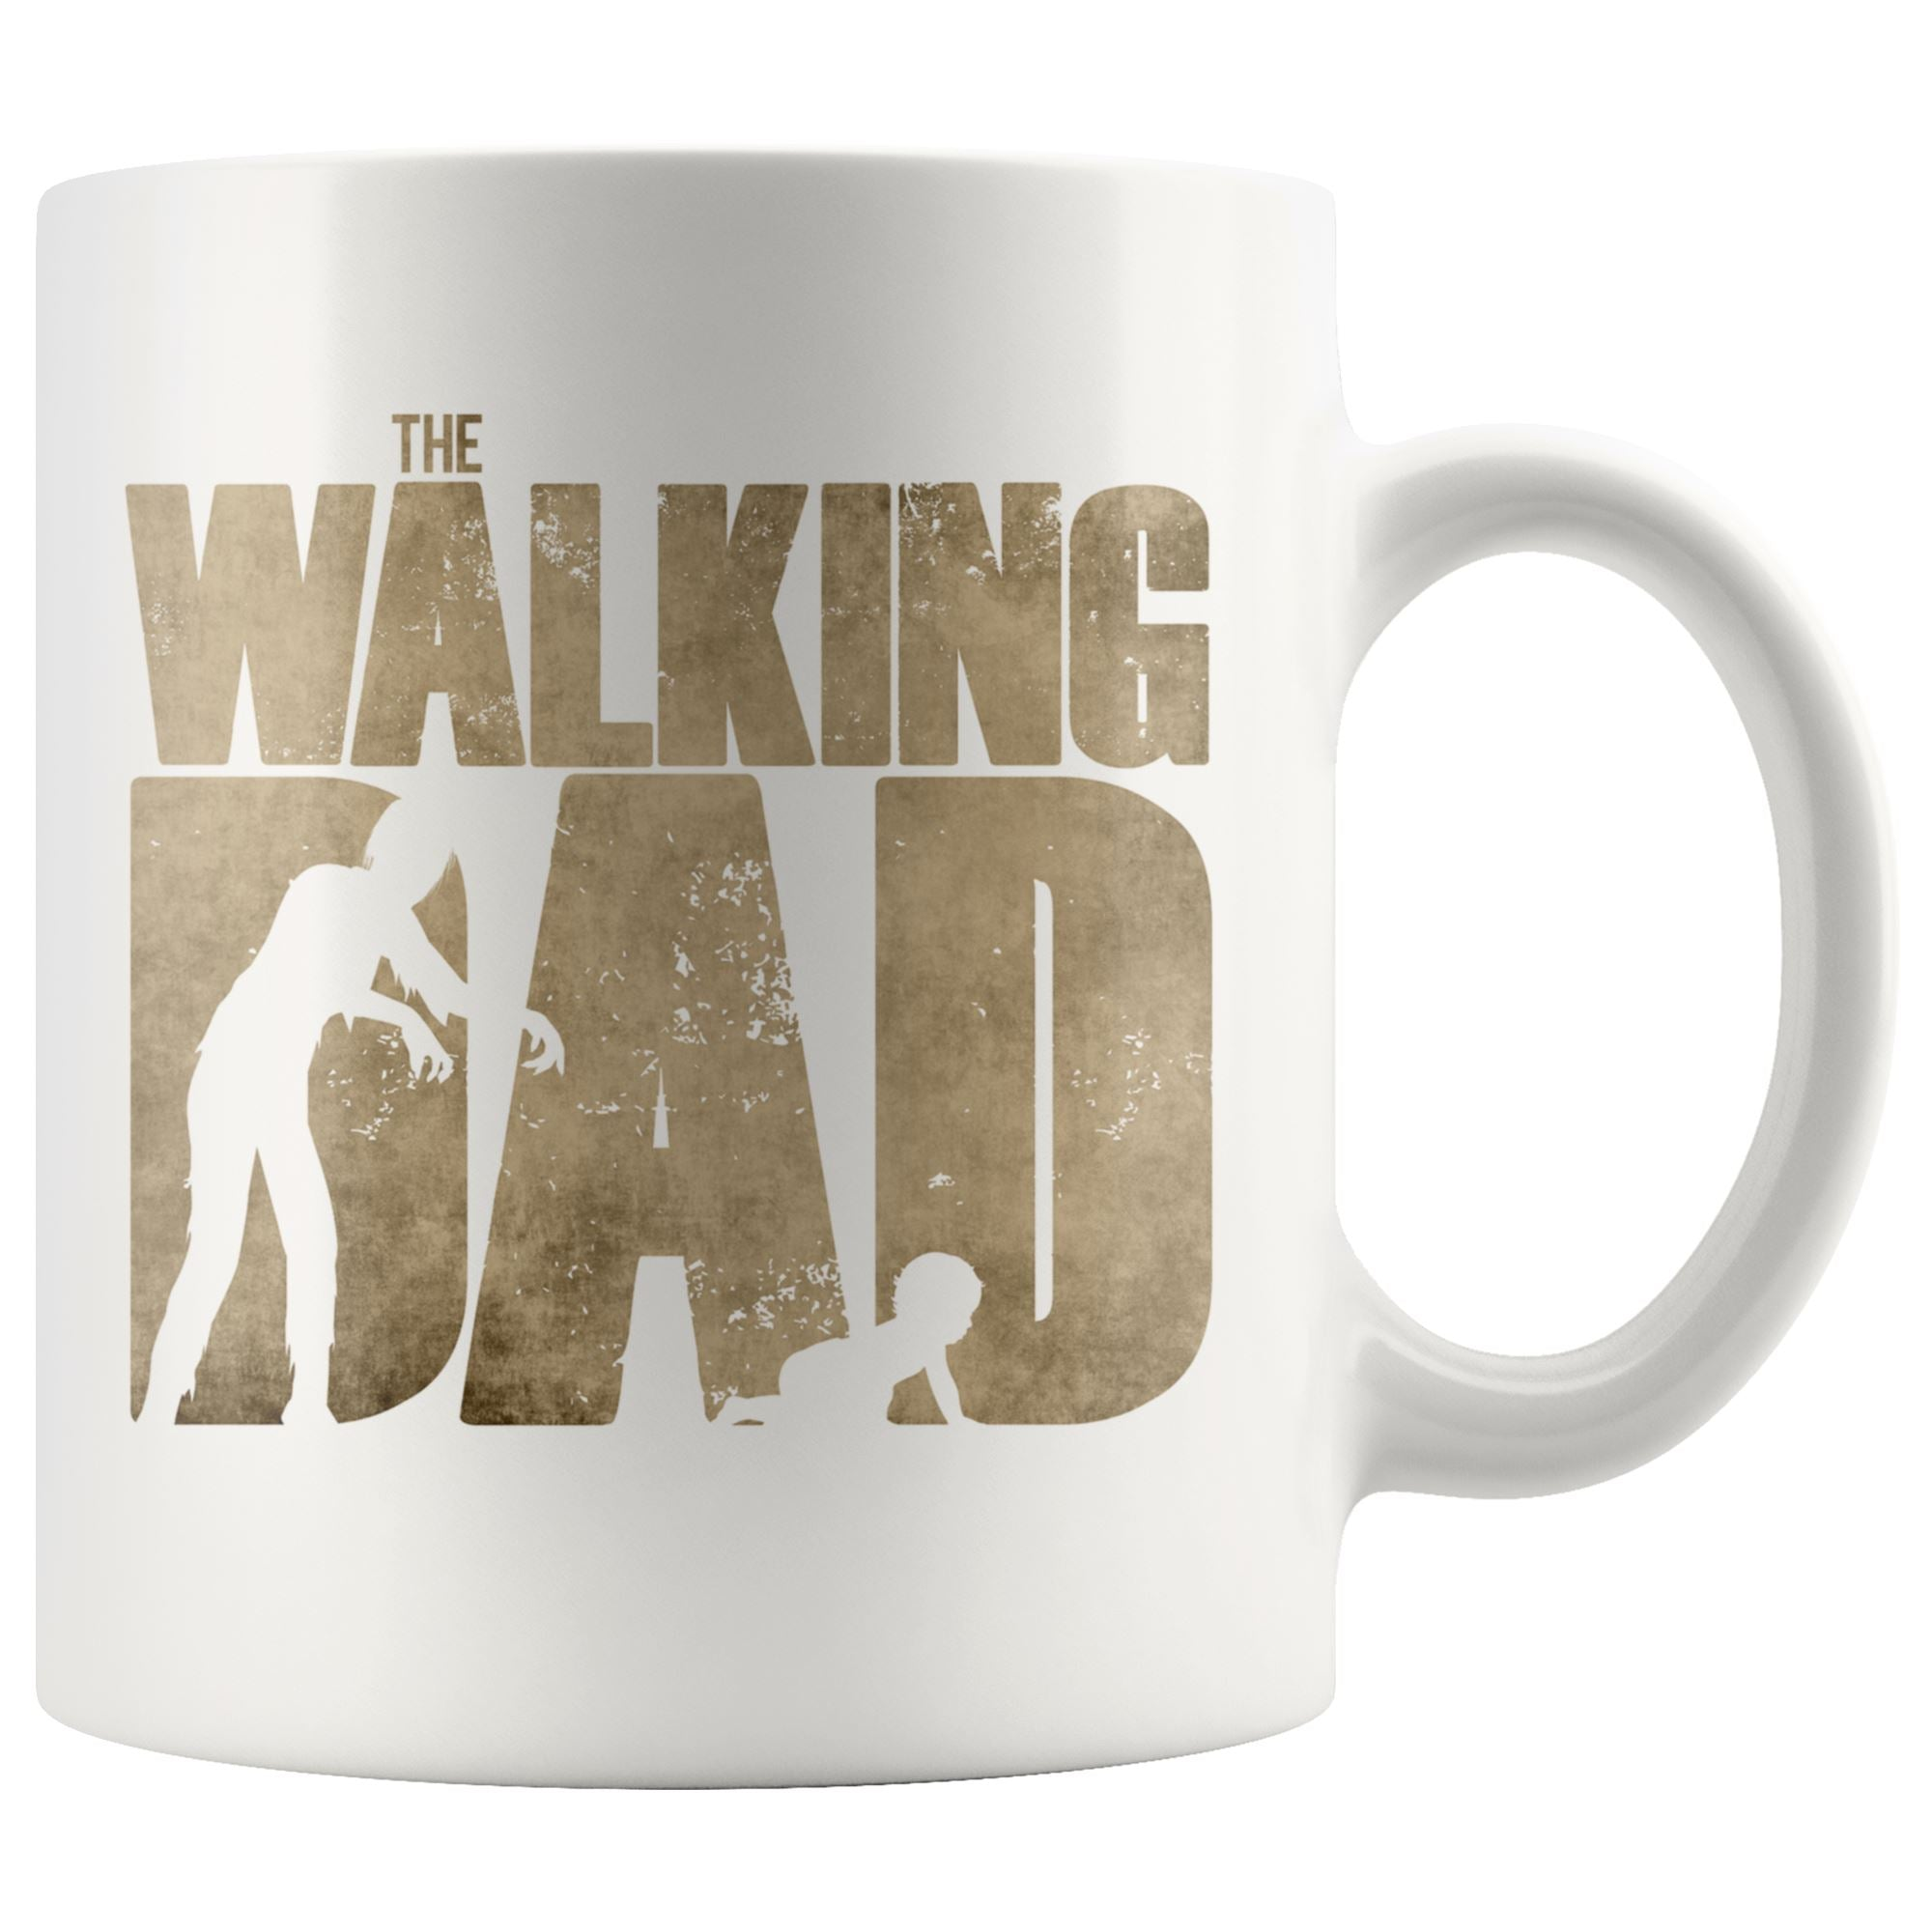 The Walking Dad mug Drinkware teelaunch 11oz Mug